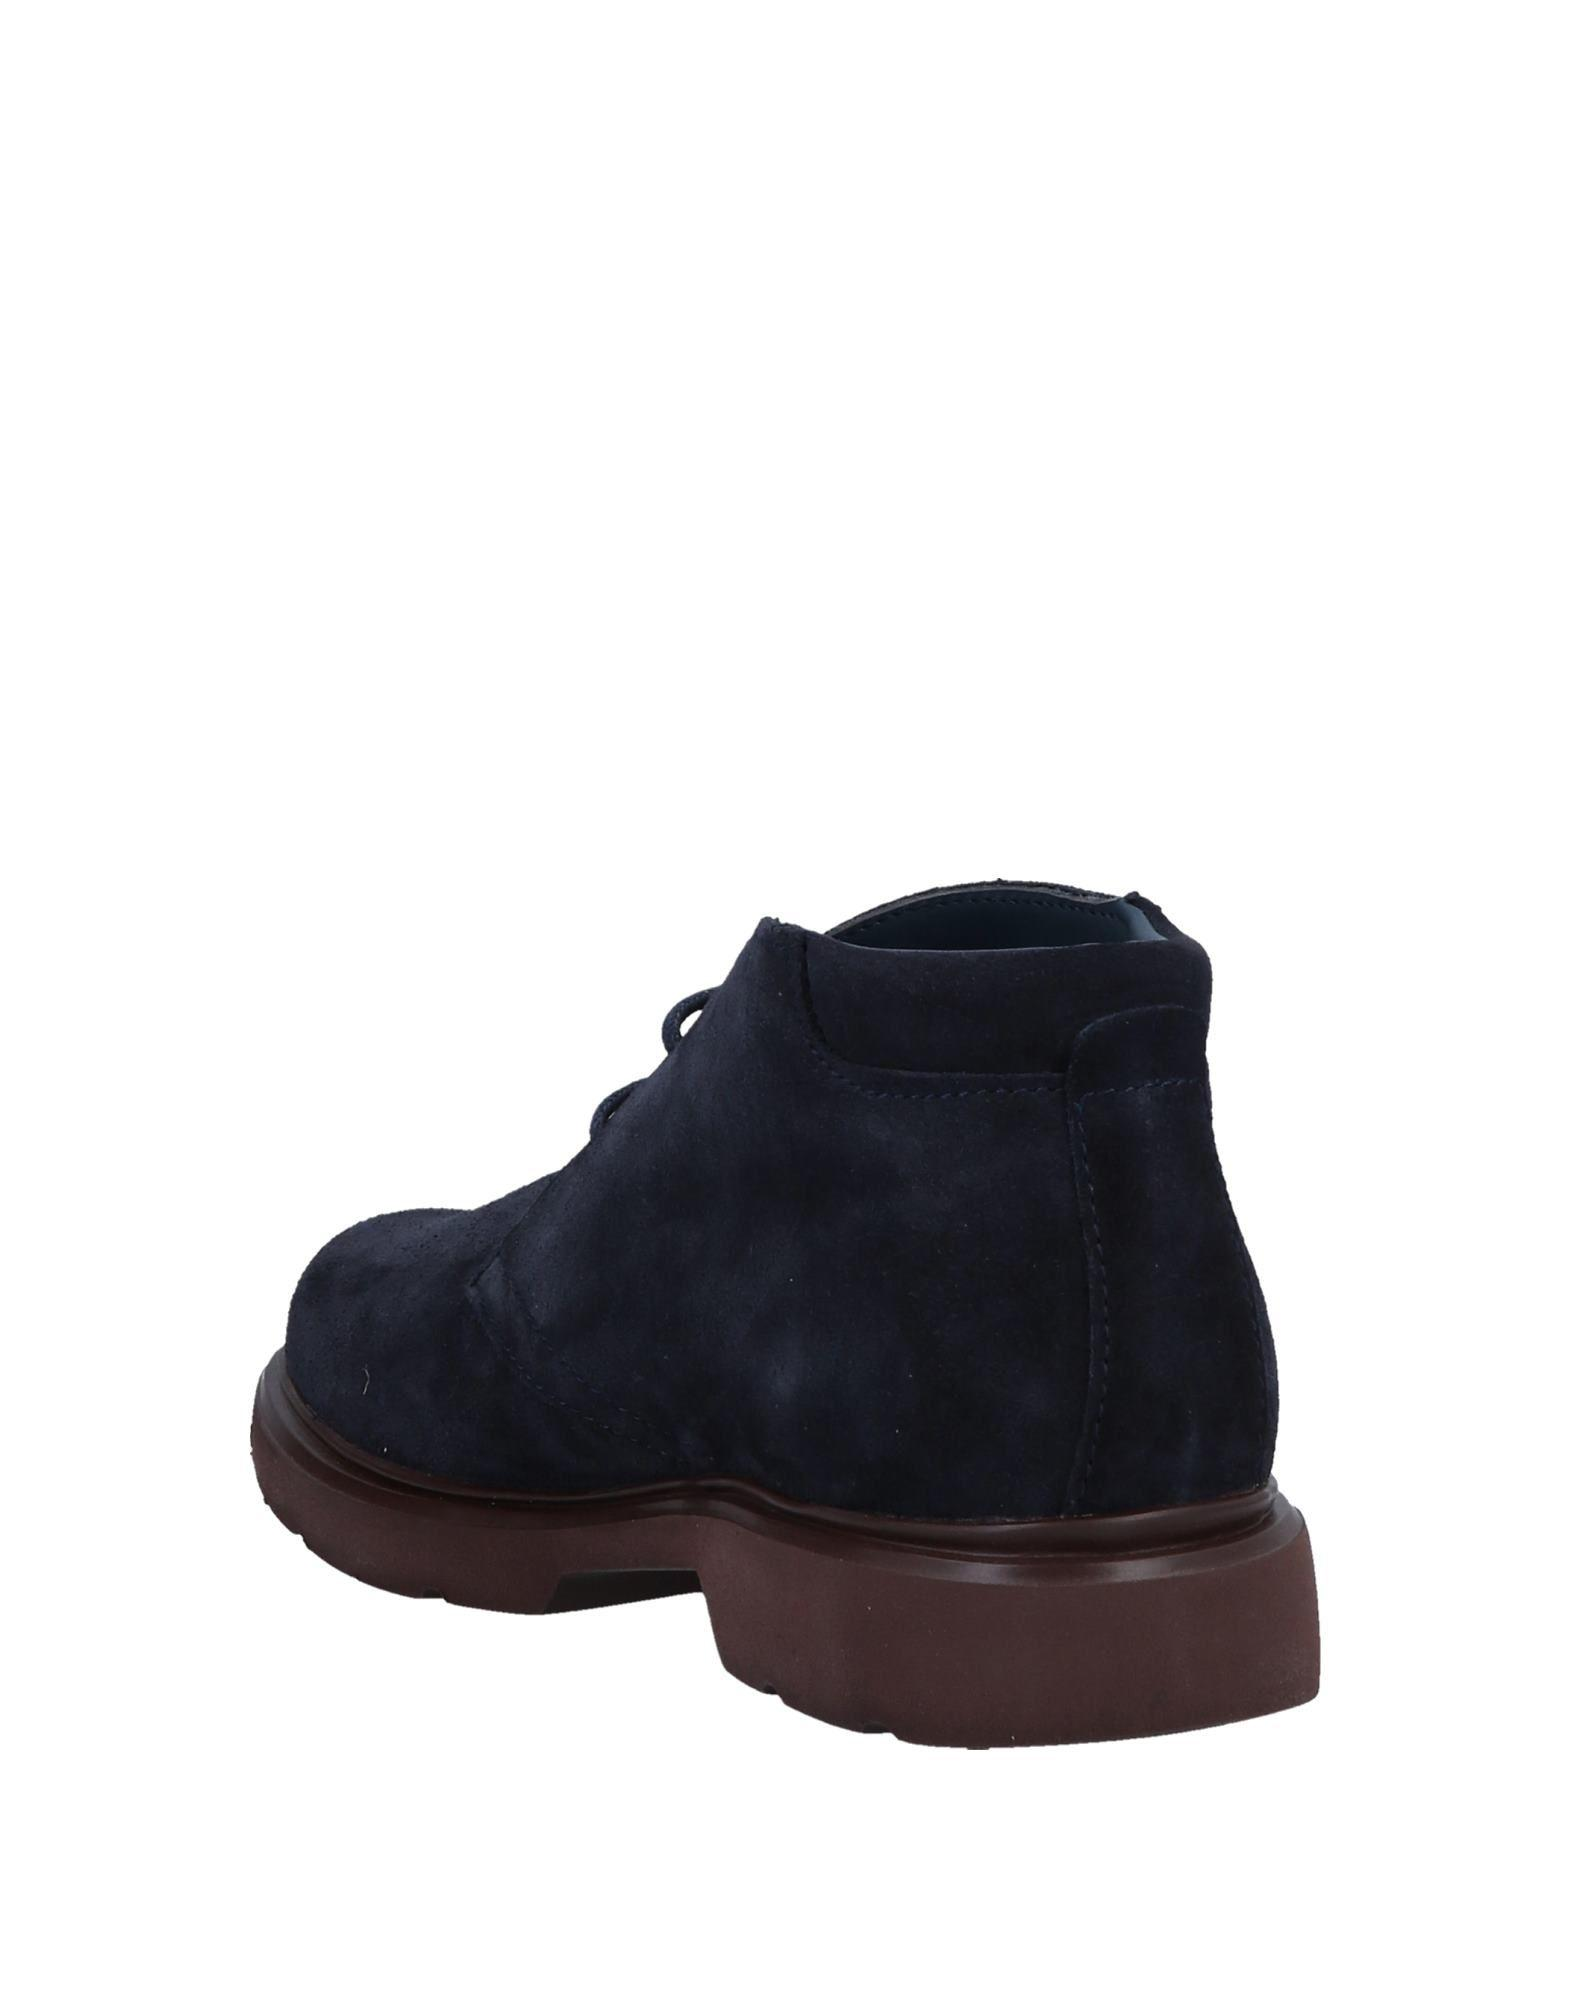 222239a1920 Lyst - Geox Ankle Boots in Blue for Men - Save 55%